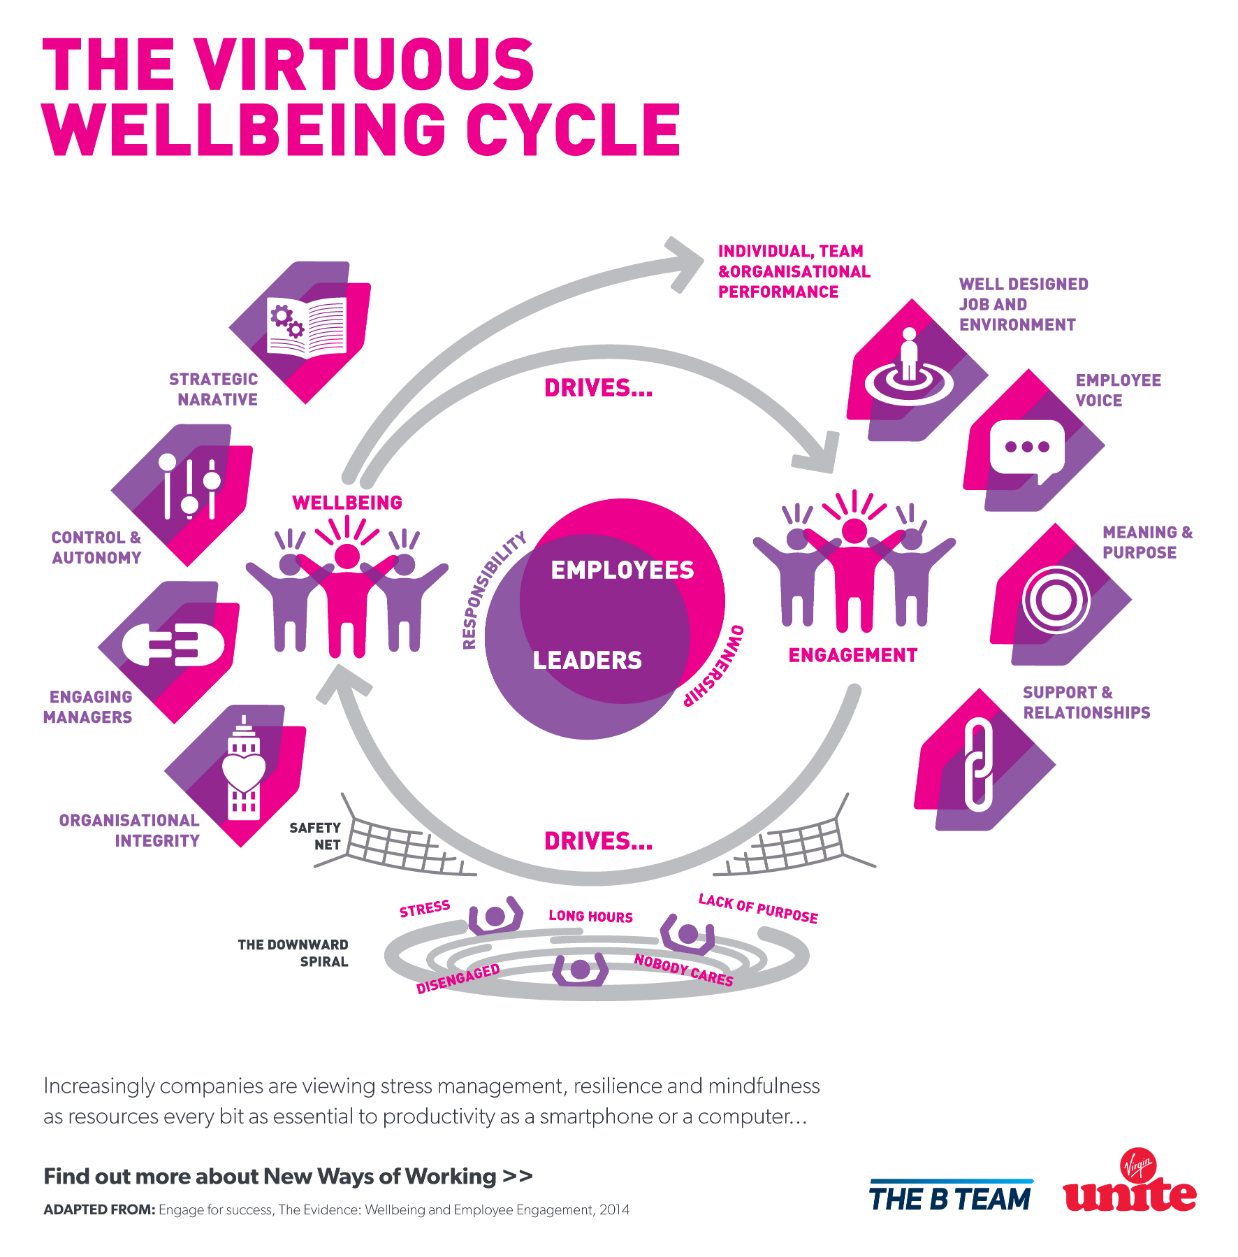 The virtuous wellbeing cycle